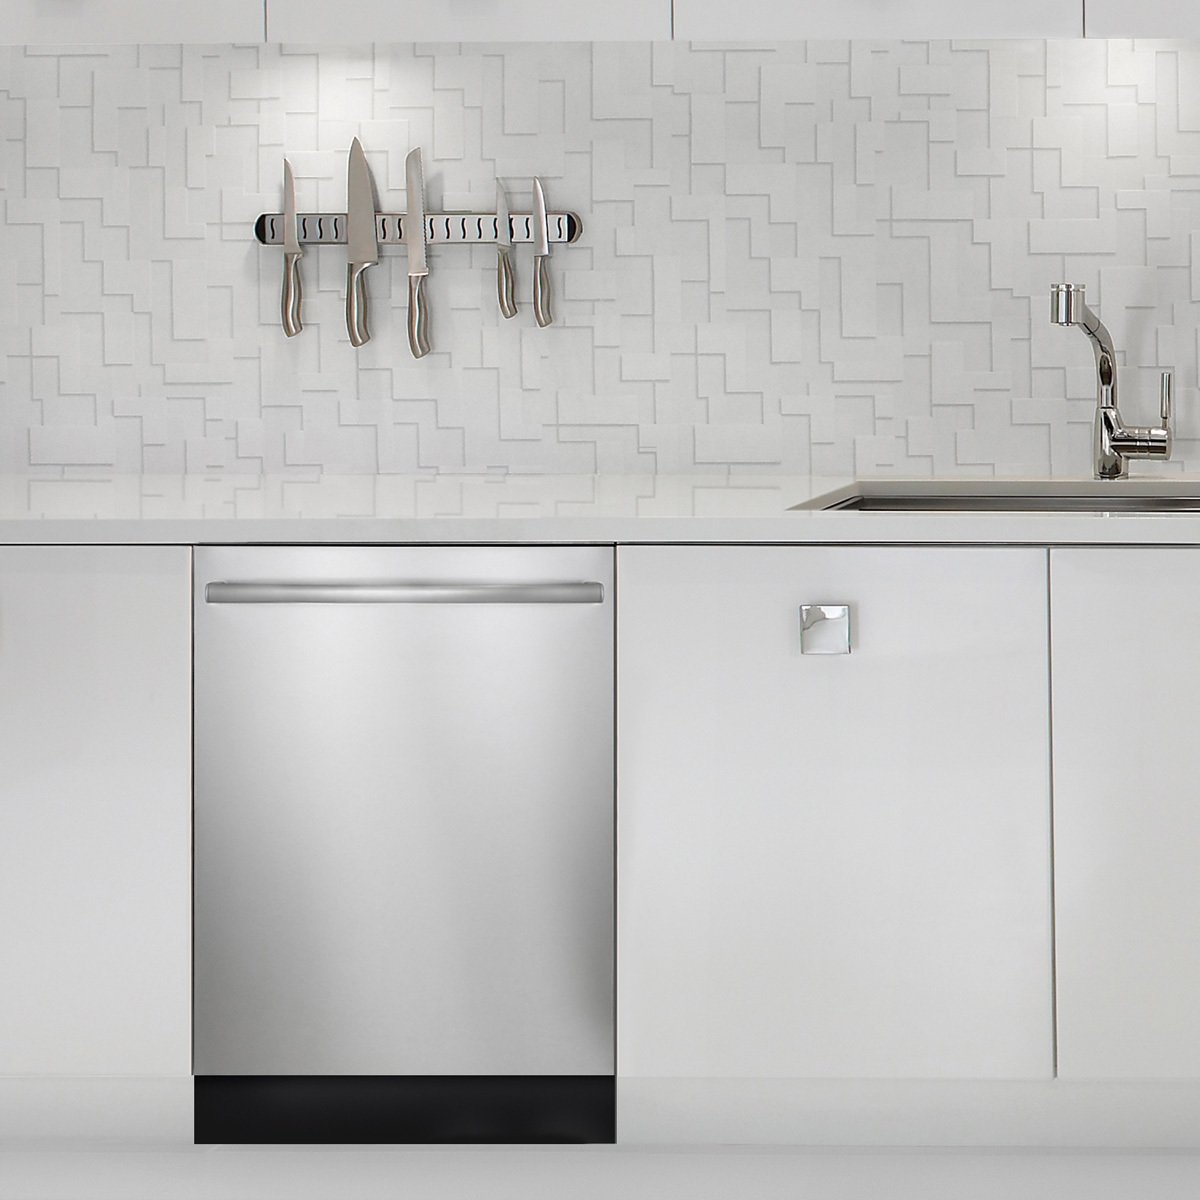 Kitchen, Dishwasher, Undermount Sink, White Cabinet, and Accent Lighting Bosch appliances' modern European look works flexibly in many kitchen types, from transitional to contemporary.  Kitchen